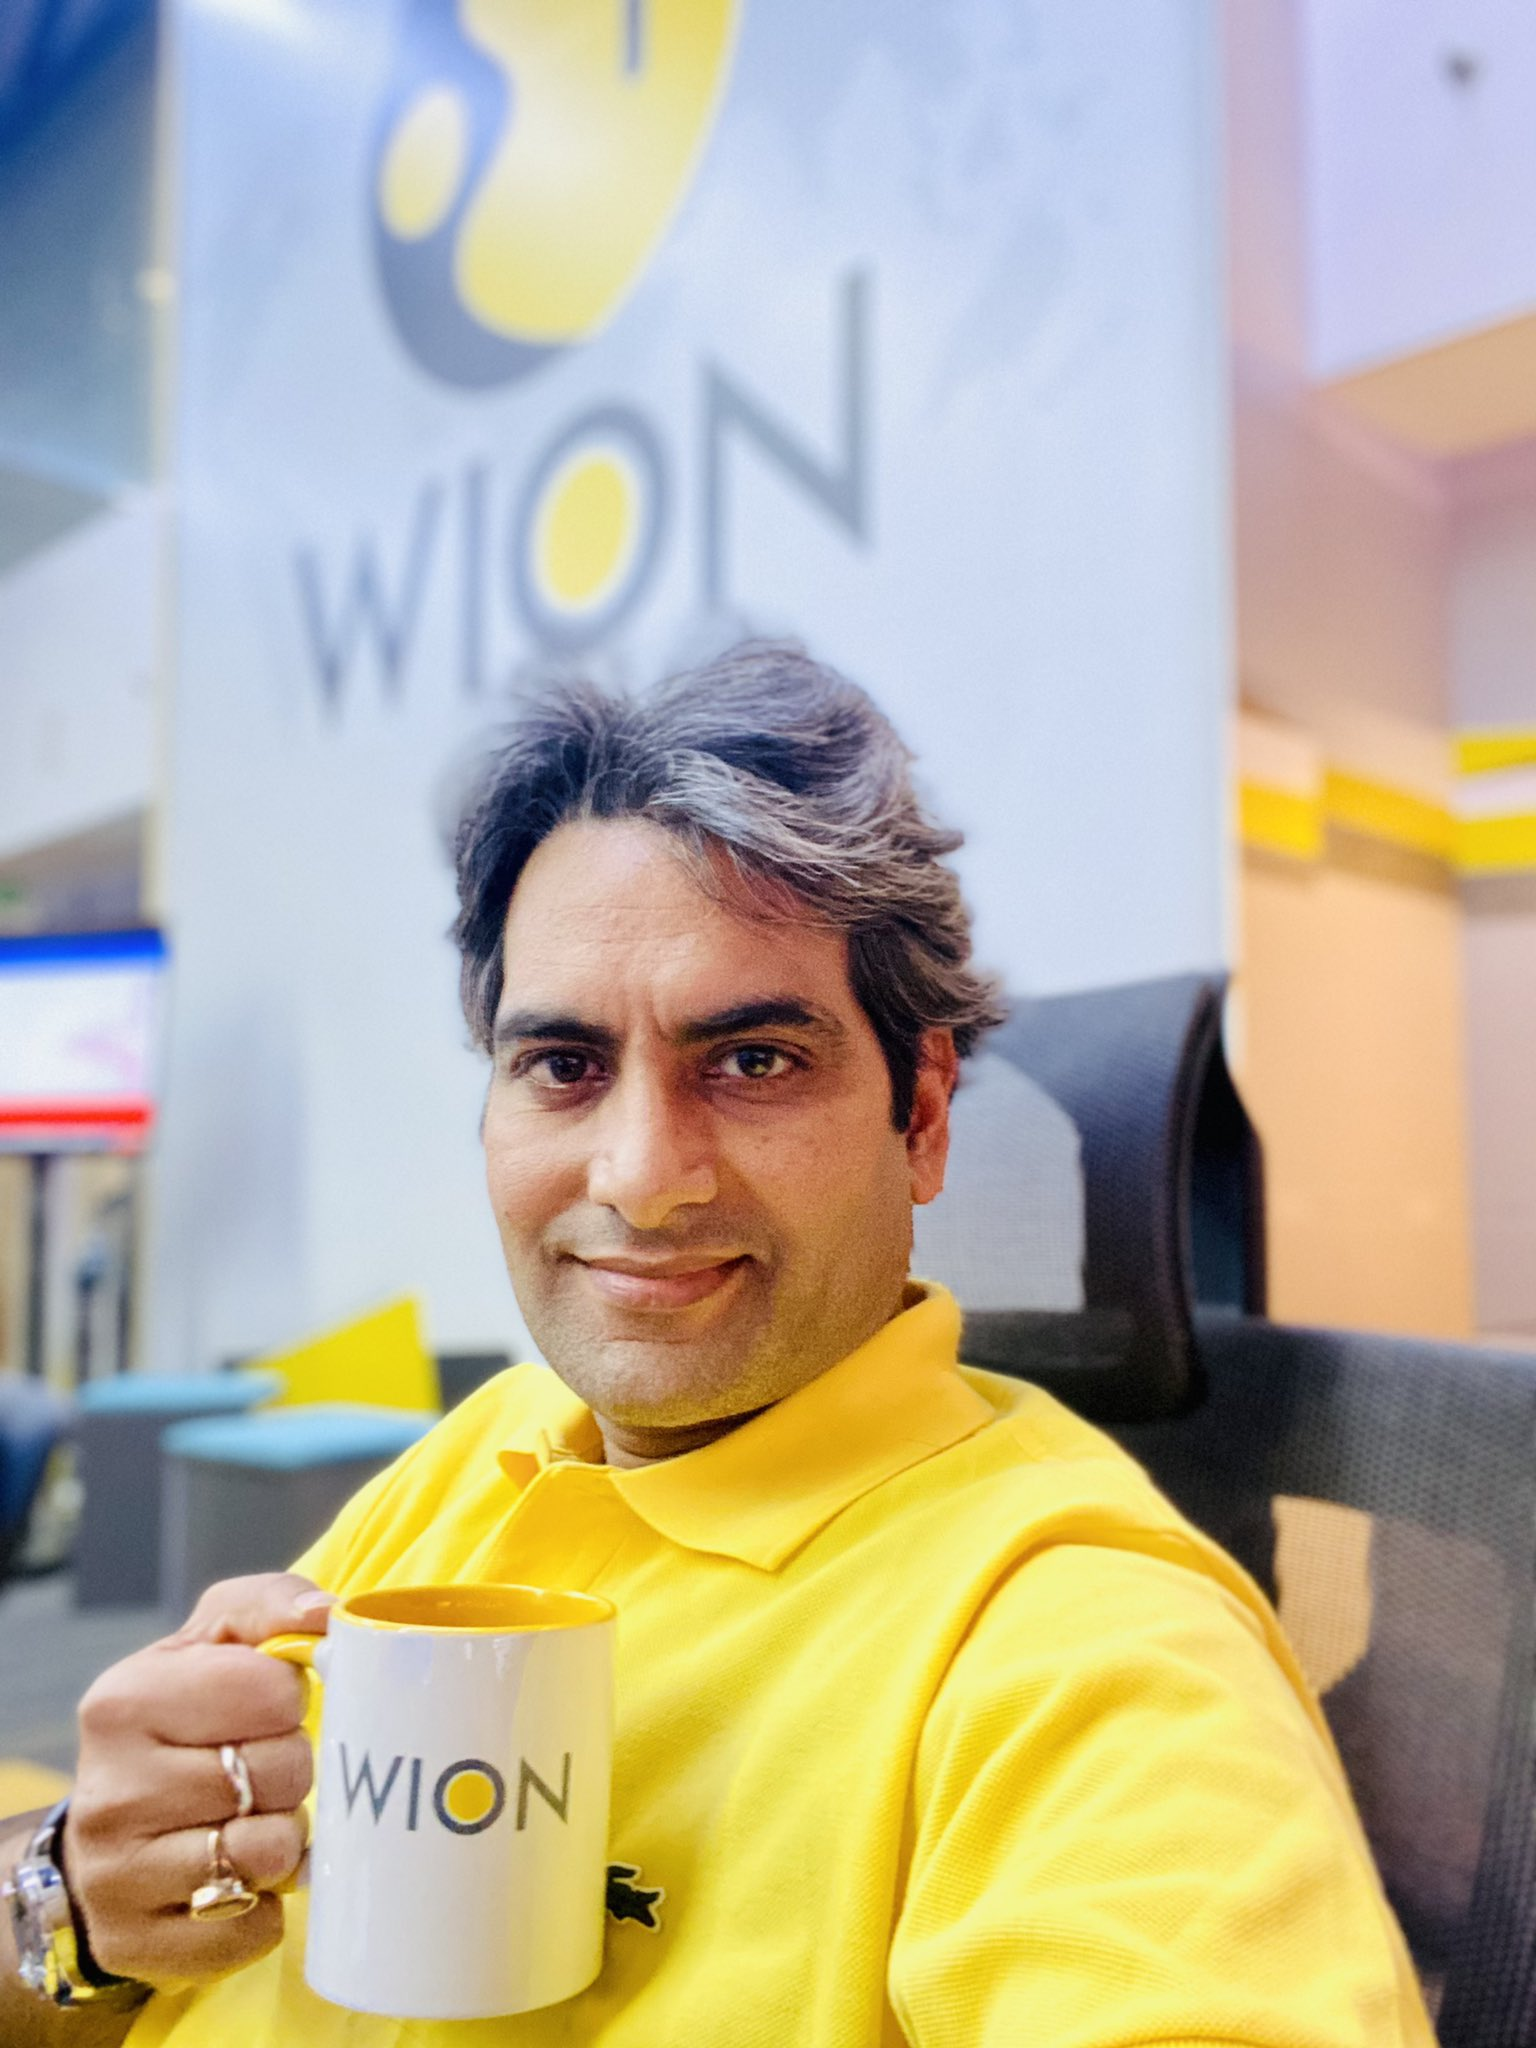 """Sudhir Chaudhary on Twitter: """"YELLOW is the brightest colour the human eye  can see. Now it's also the brightest colour of NEWS. YELLOW now represents  @WIONews . #BleedYellow… https://t.co/BJ9lCI6EjA"""""""